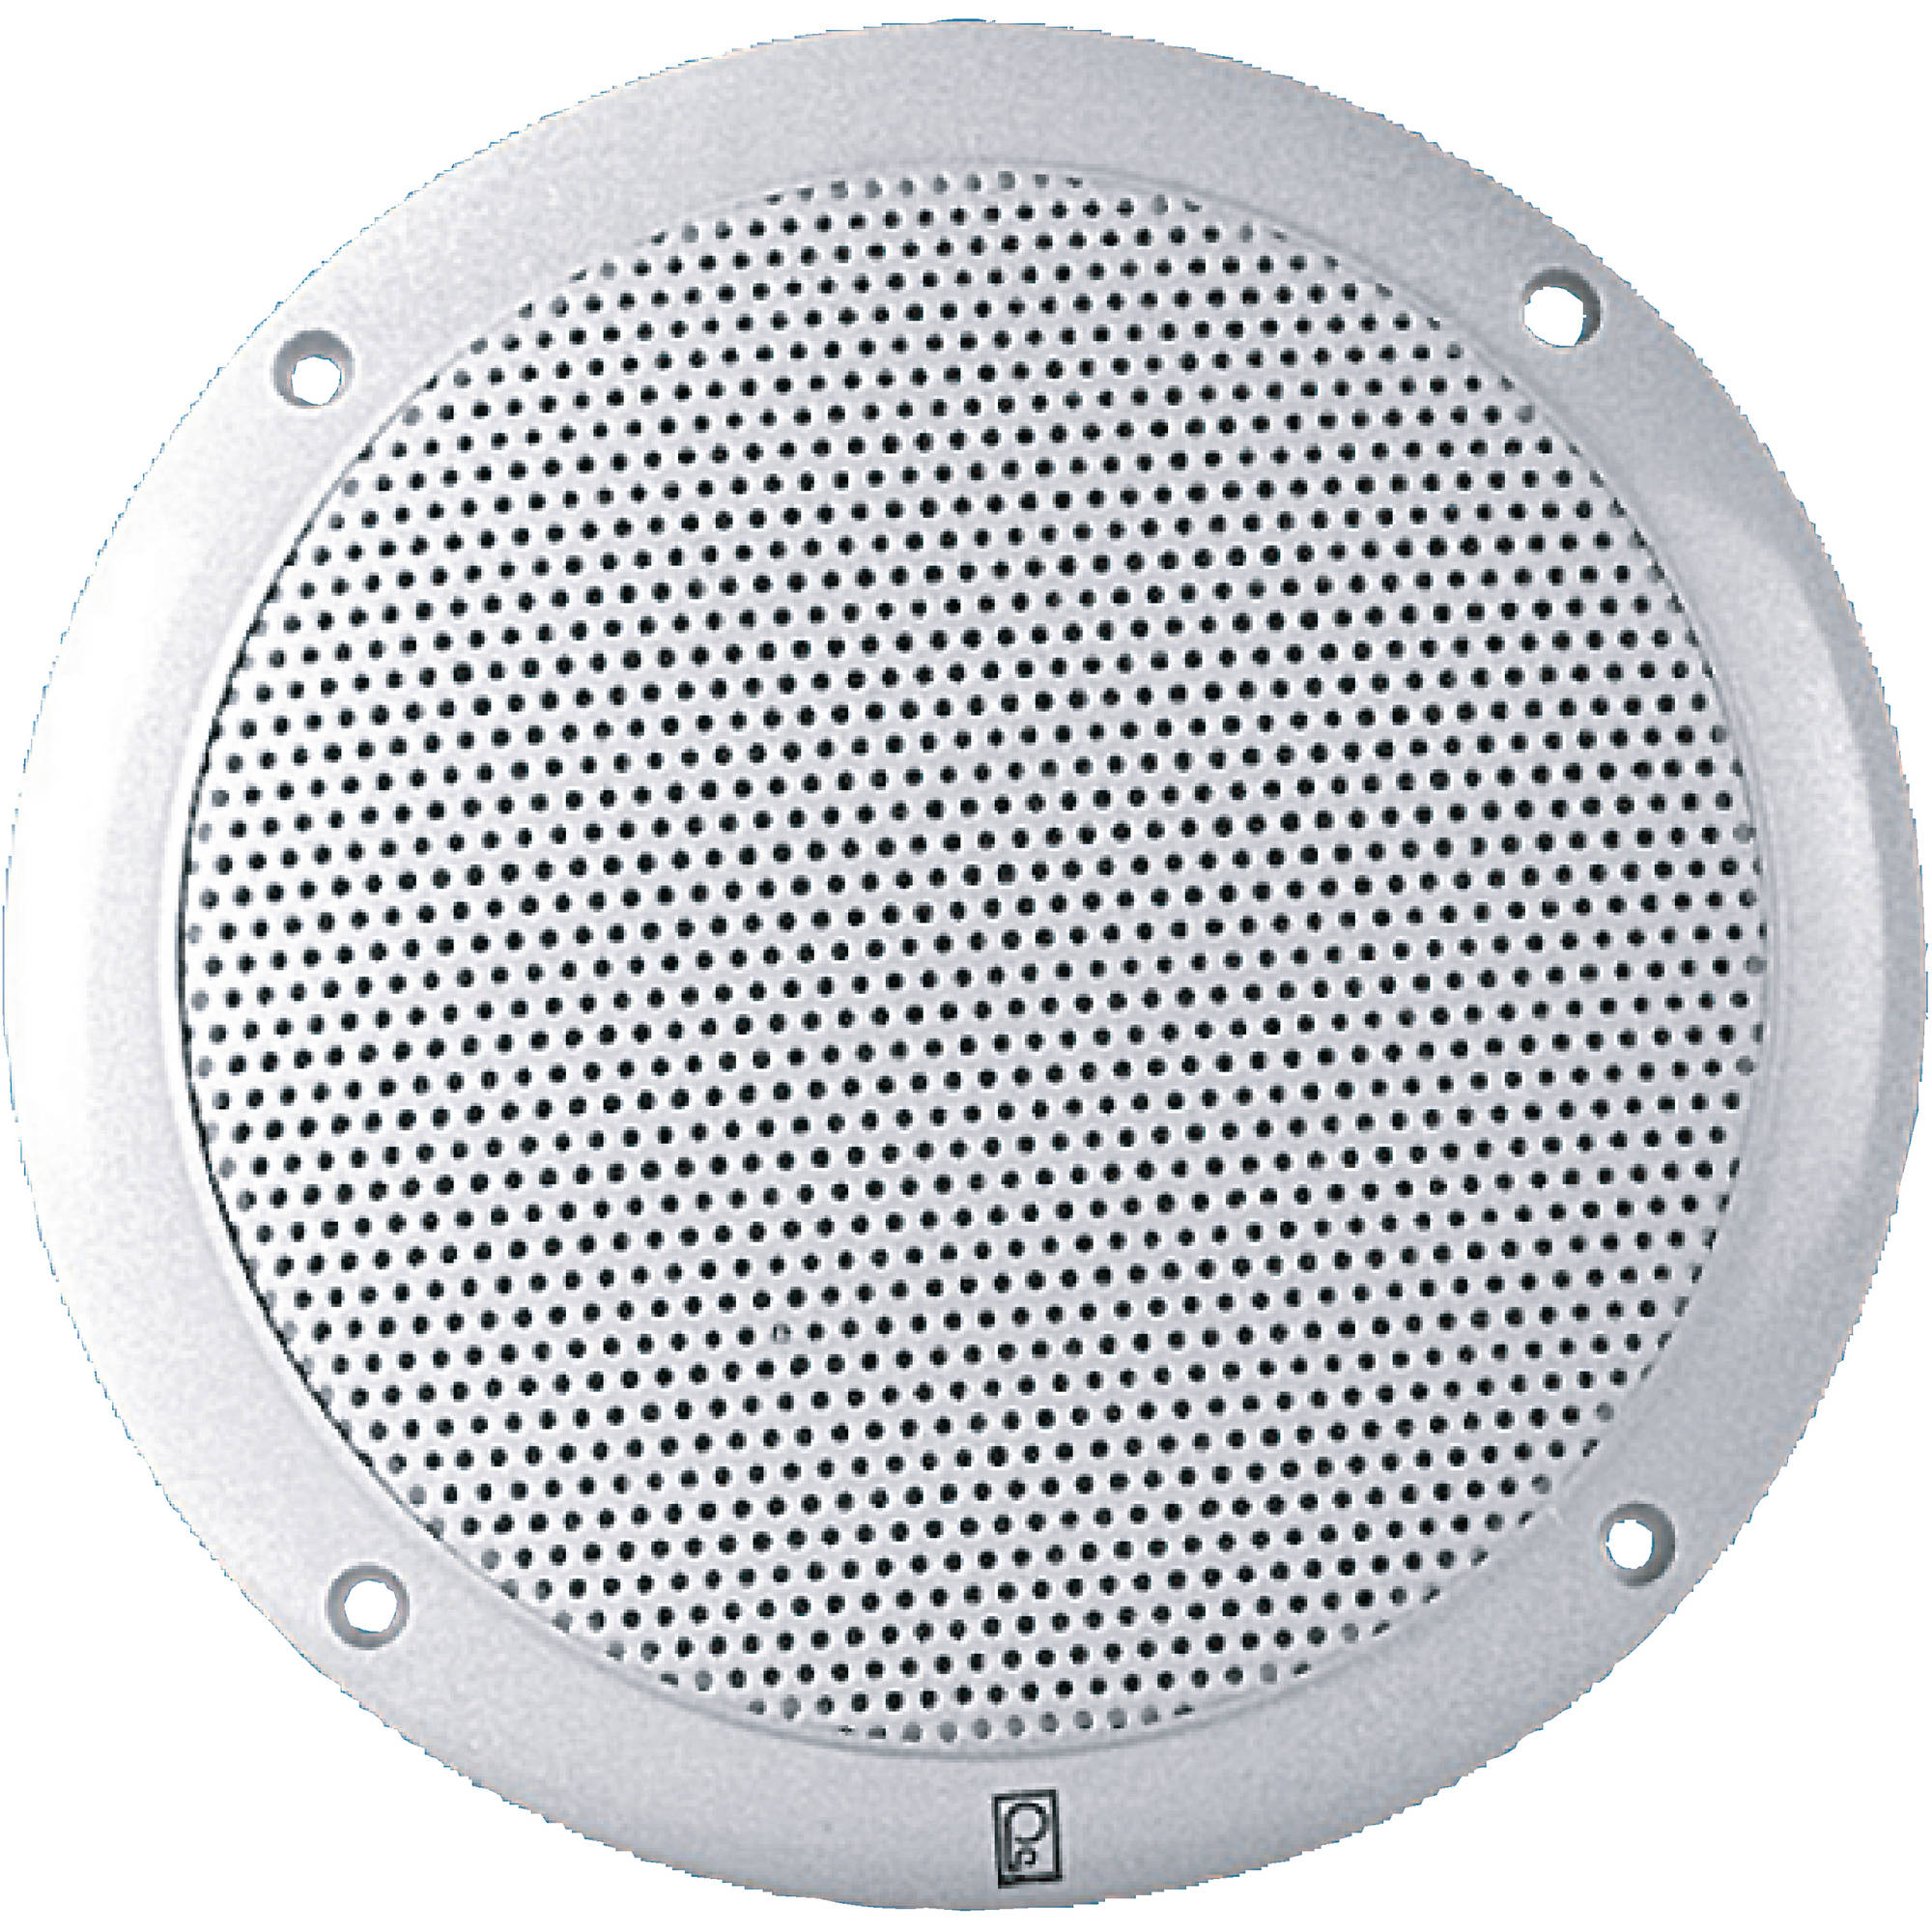 Poly-Planar Waterproof 2 Way Coax - Integral Grill Performance Speakers, 80W Per Pair, White (Sold as Pair)